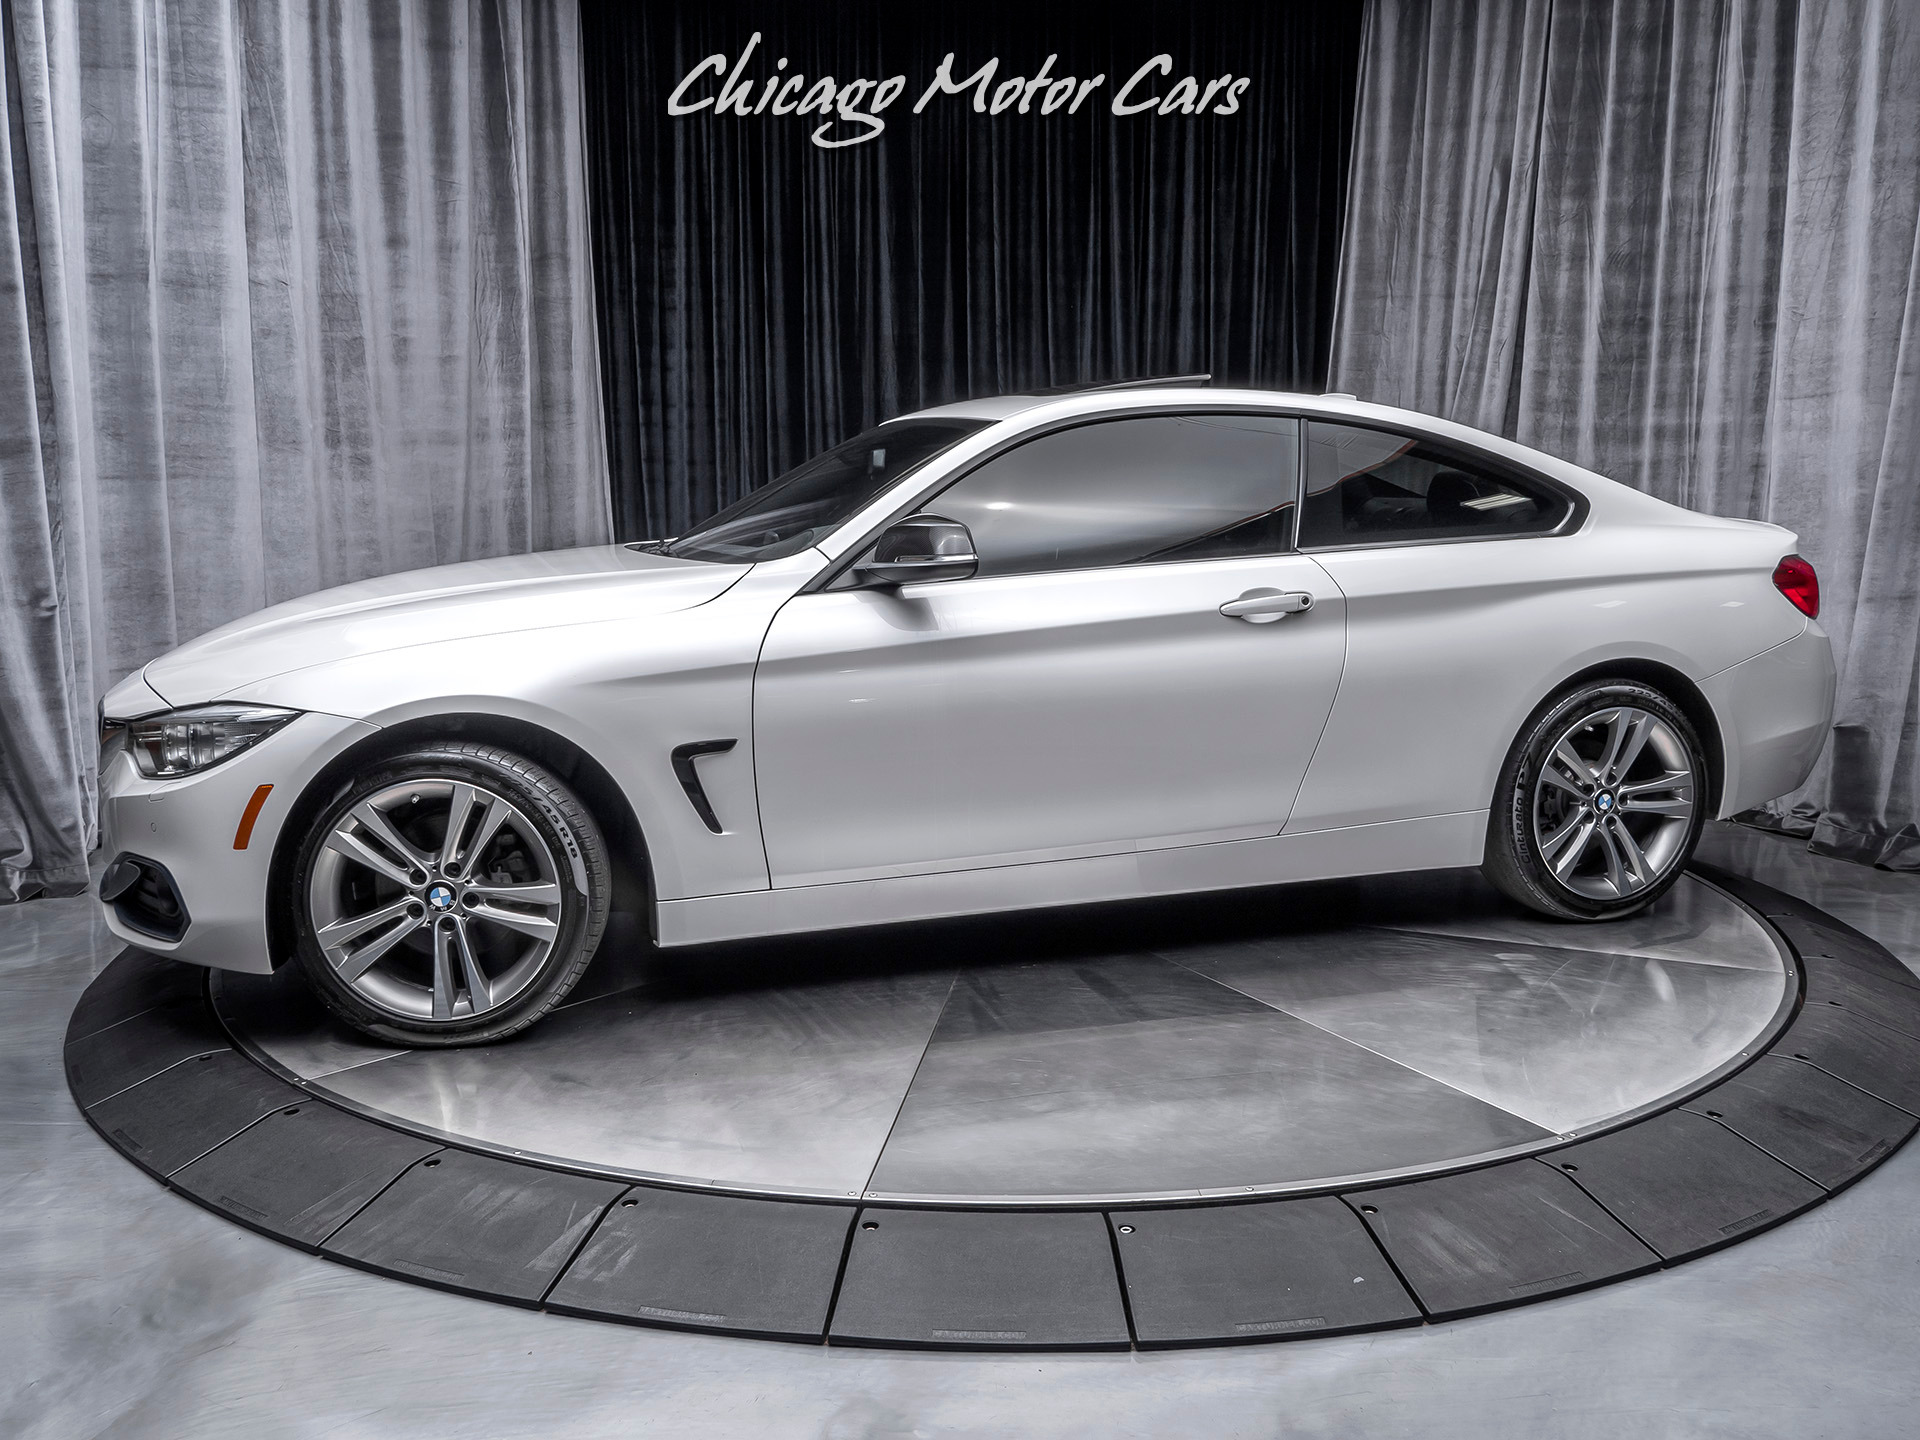 Used 2015 Bmw 428i Xdrive Coupe Msrp 54k For Sale Special Pricing Chicago Motor Cars Stock 15966